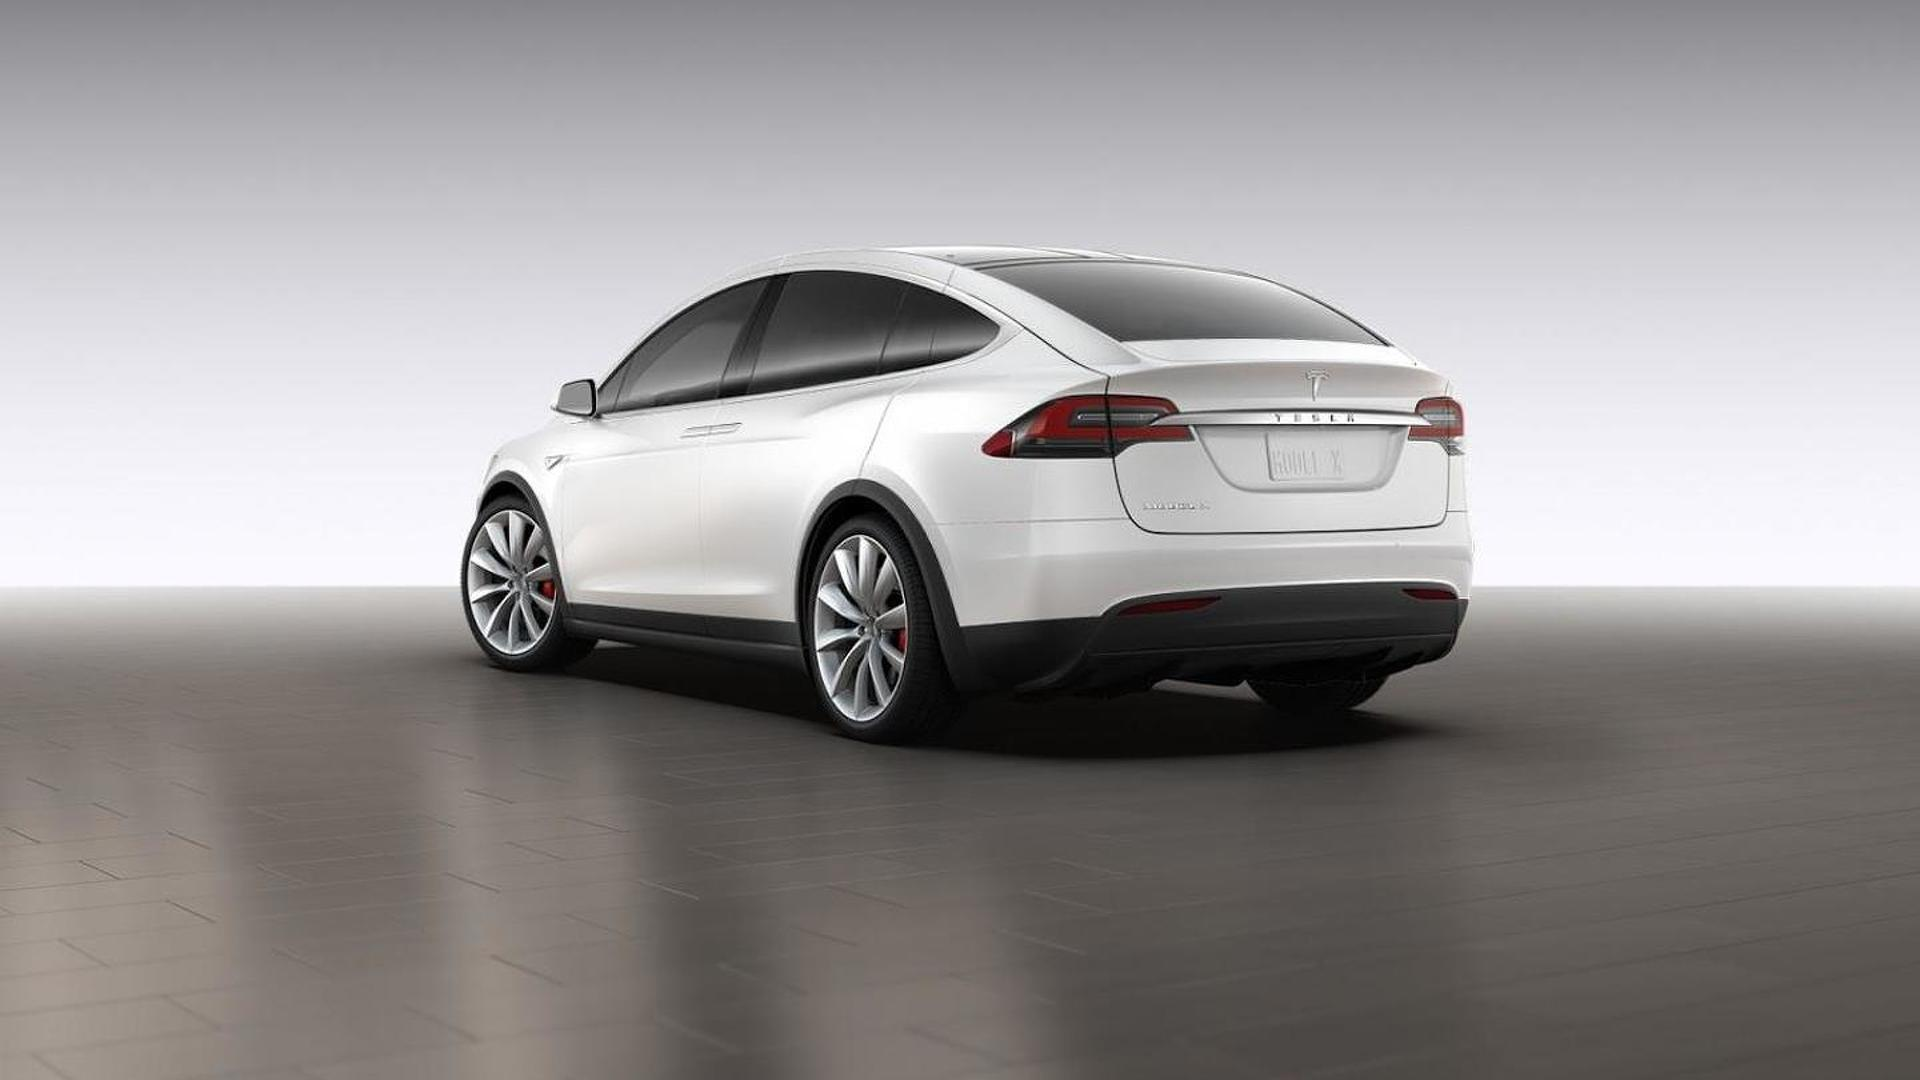 Production Tesla Model X first pictures emerge